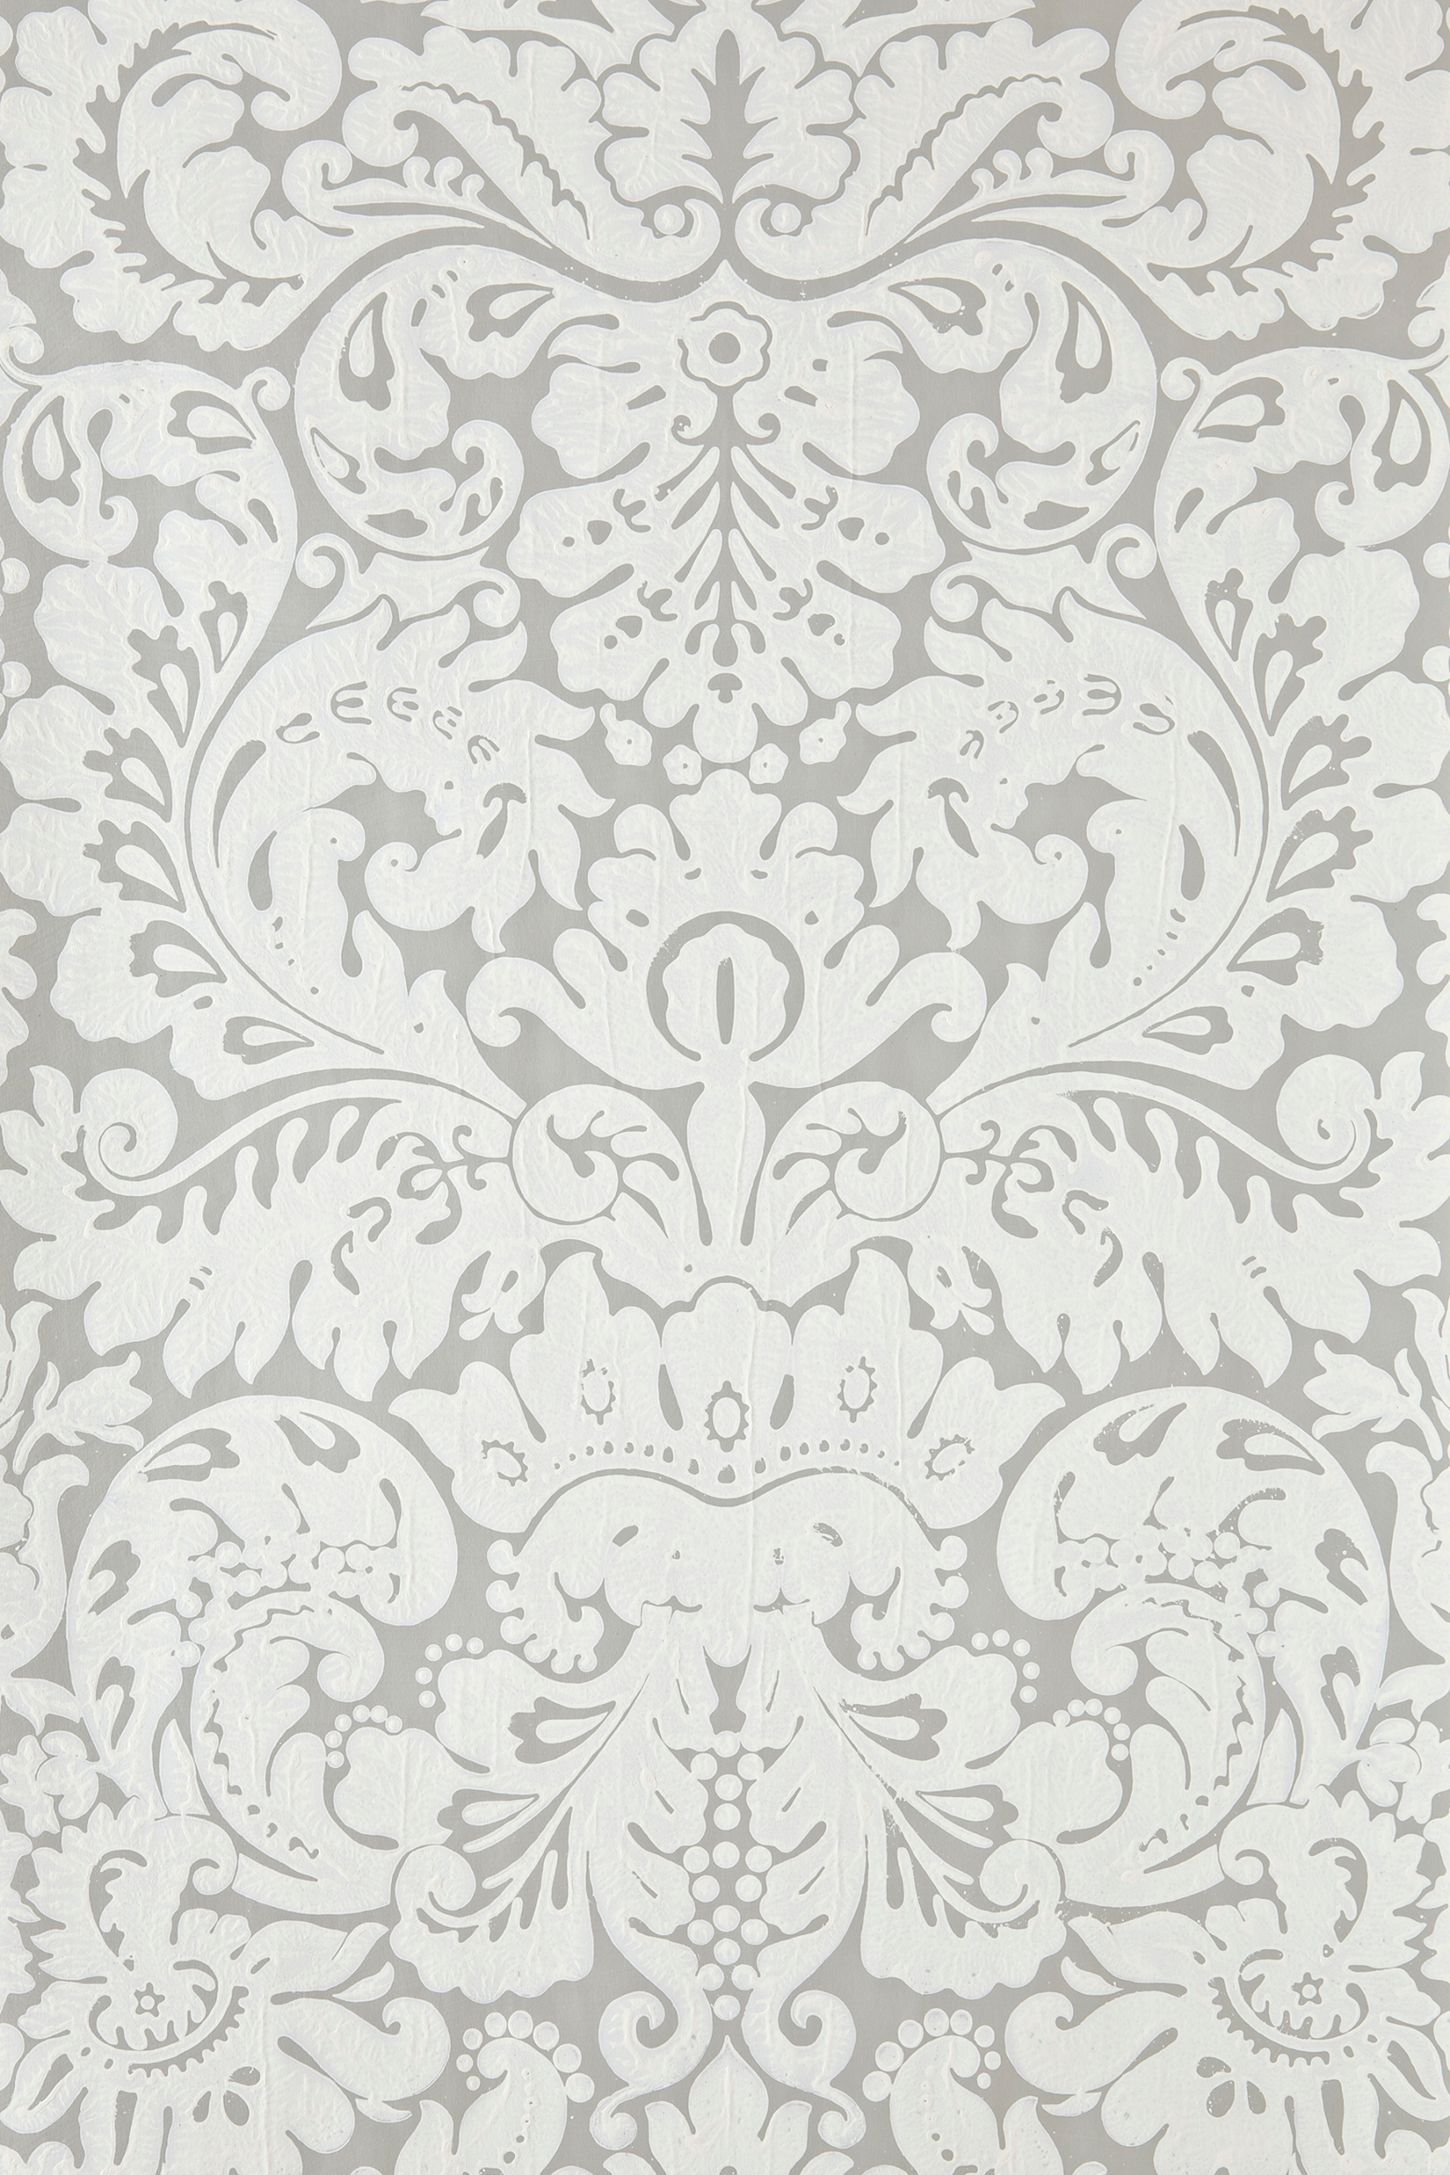 Farrow Ball Silvergate Wallpaper Painting Down The House In